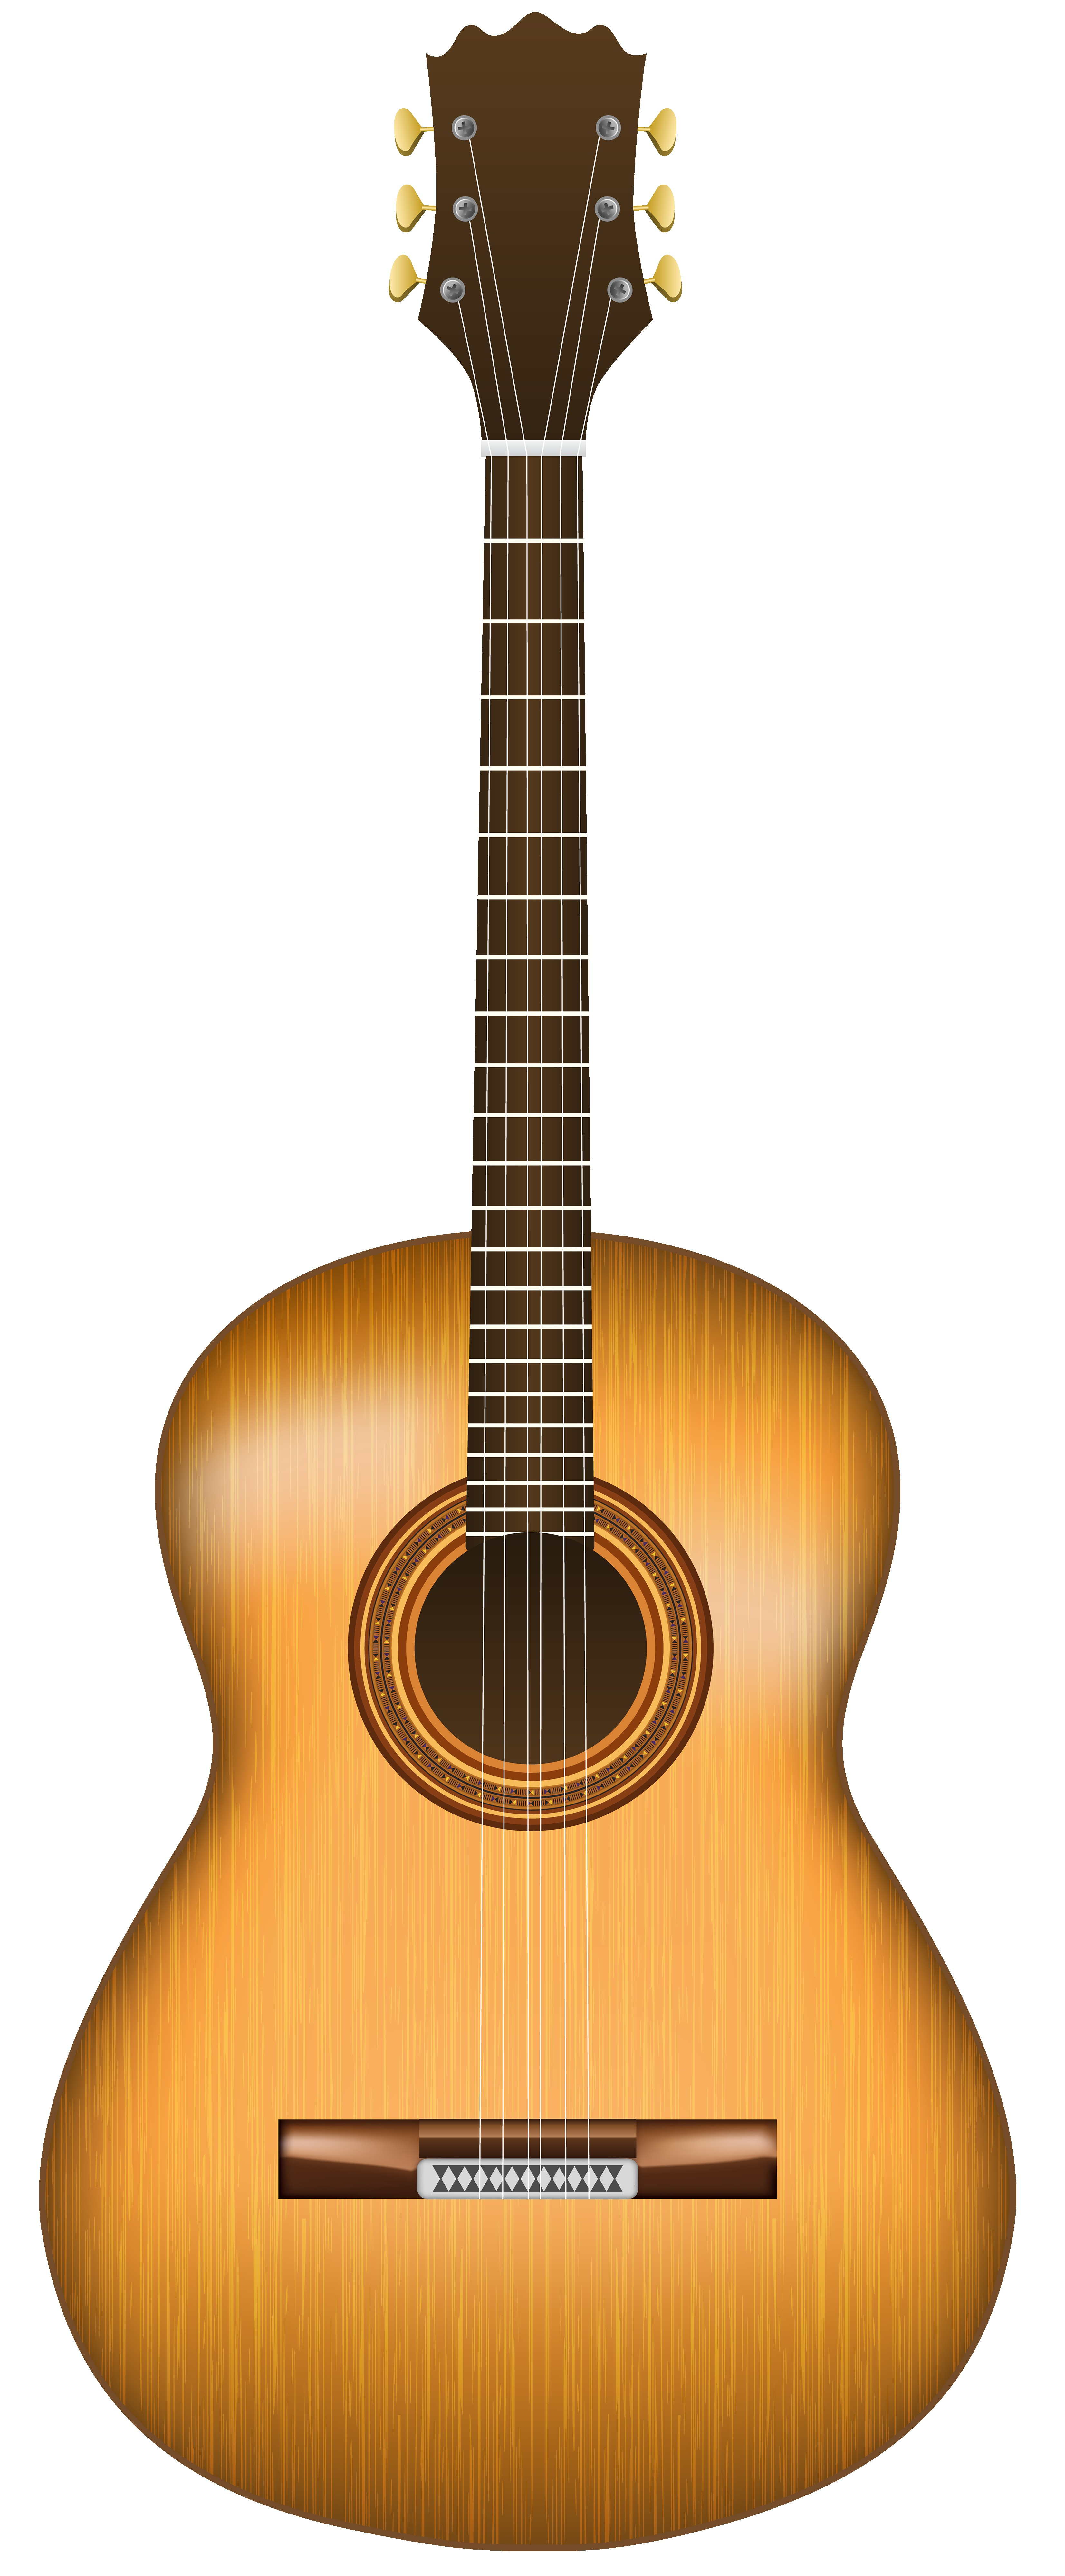 3306x8000 Guitar Transparent Png Clip Art Gallery Yopriceville High Cool